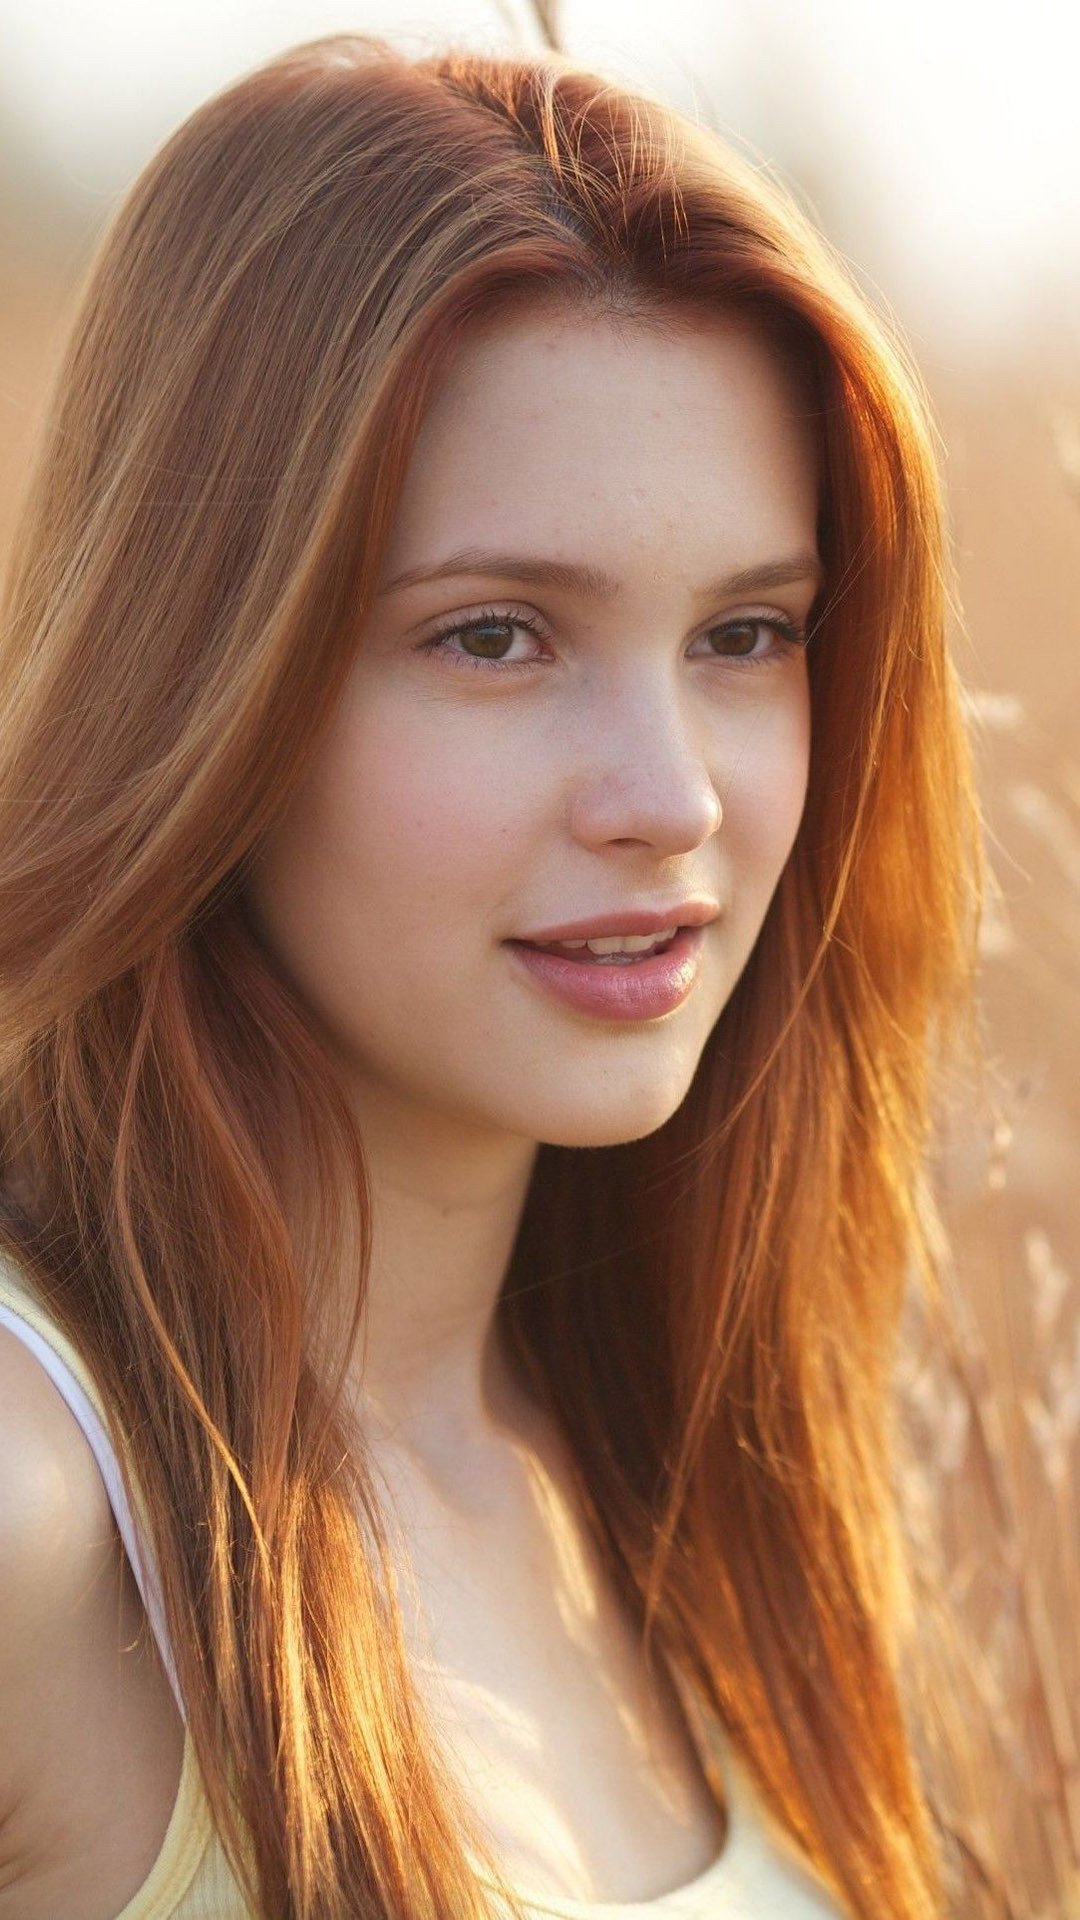 Hollywood Beautiful Girl Hd Wallpaper Alexia Fast Hd Wallpapers